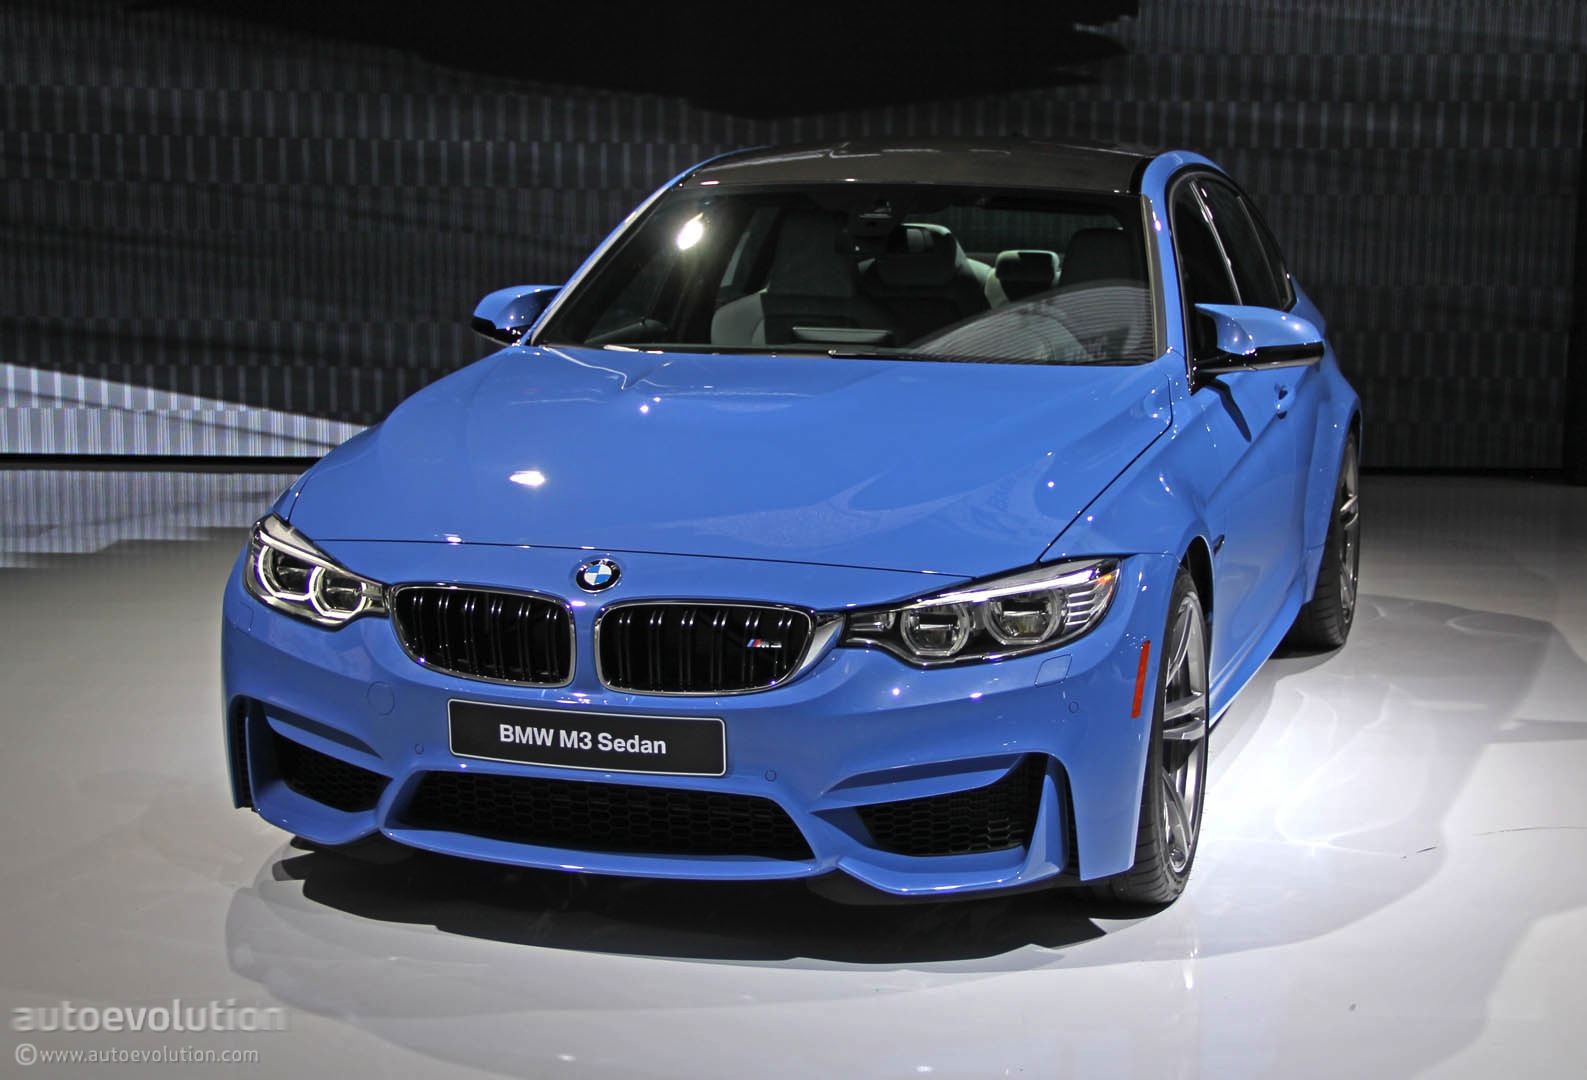 Bmw M4 Coupe >> New BMW M3 Is Blue All Over in Detroit [Live Photos] - autoevolution